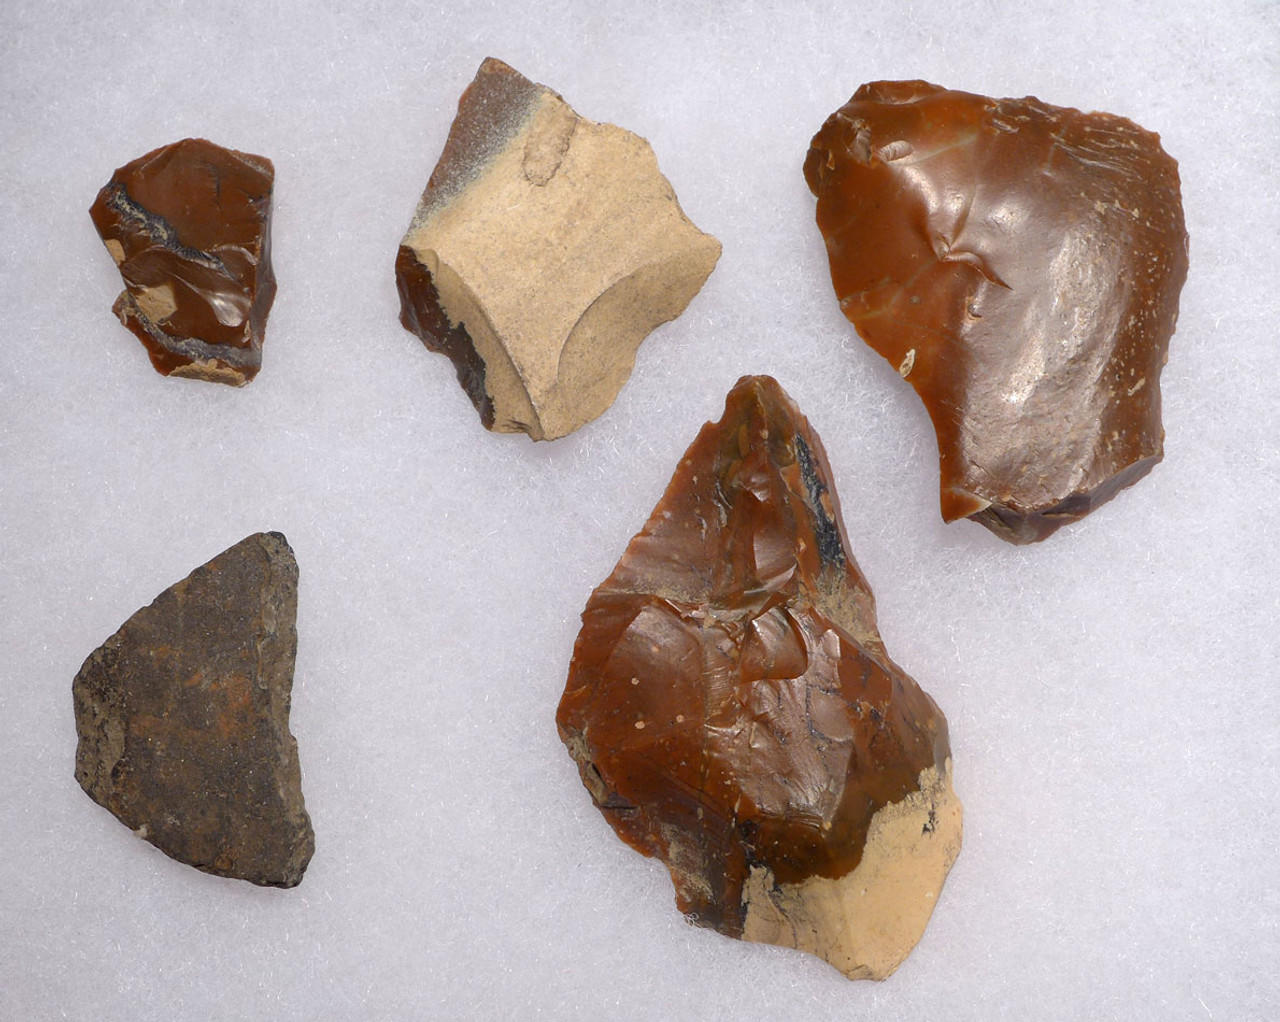 RARE LINEAR POTTERY CULTURE HUNGARIAN NEOLITHIC FLAKE TOOL SET OF RED RADIOLARITE  *N189